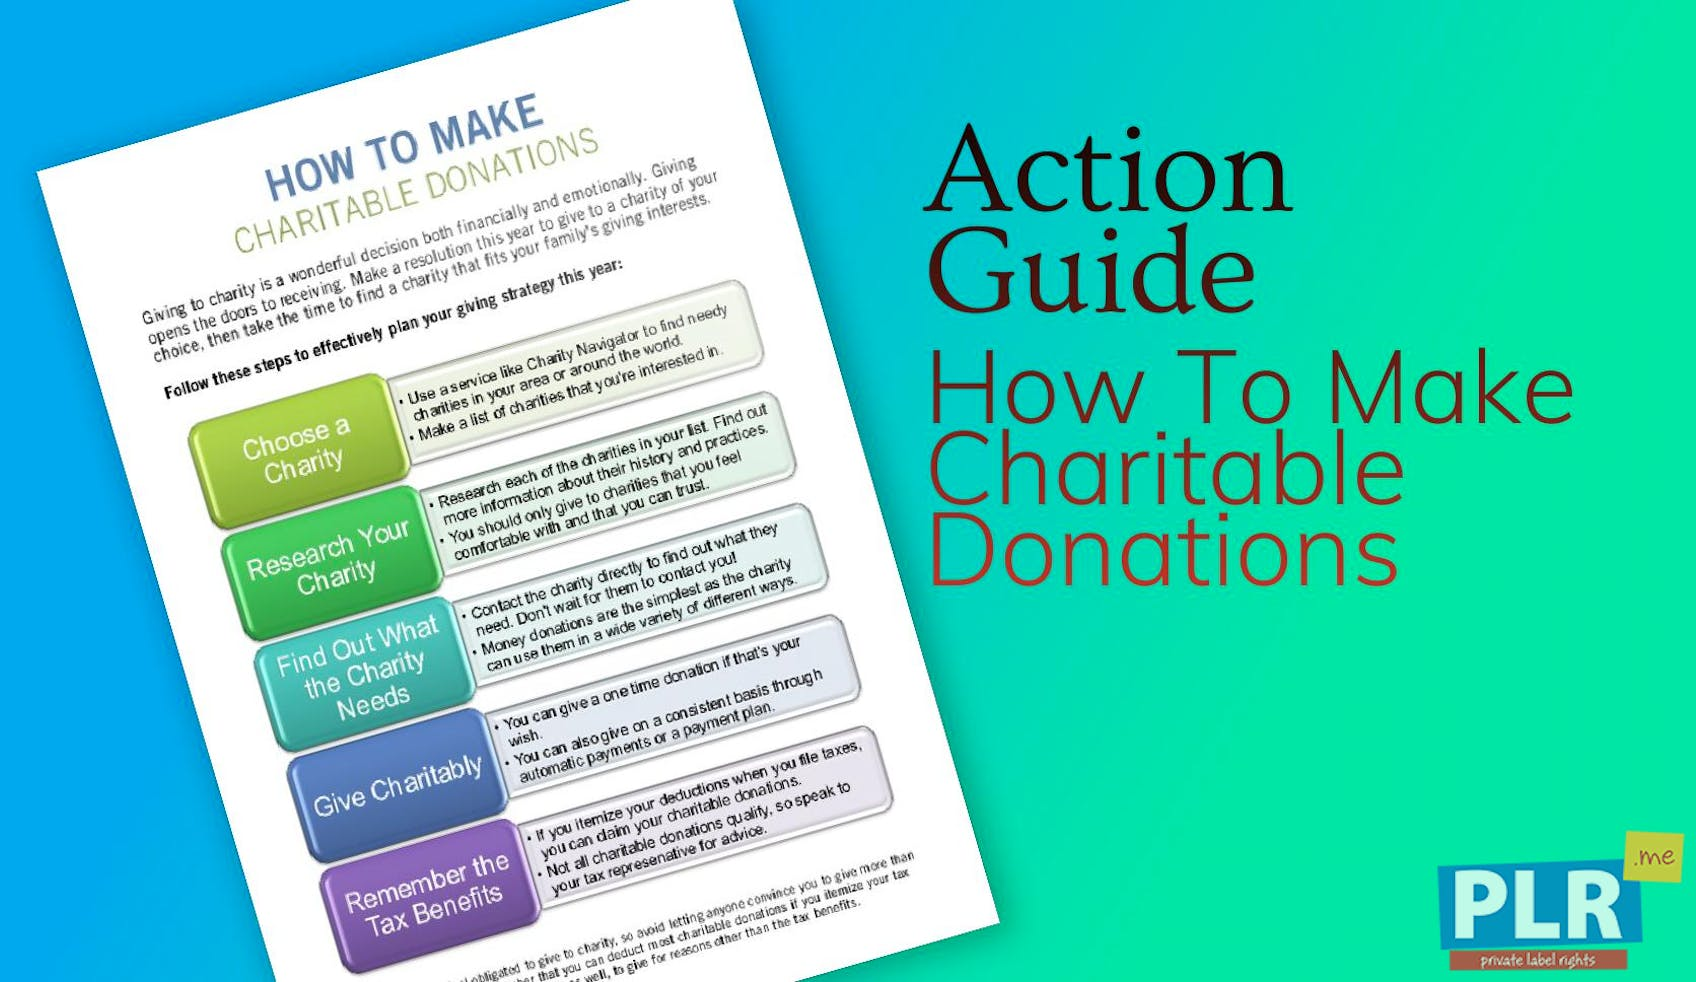 How To Make Charitable Donations